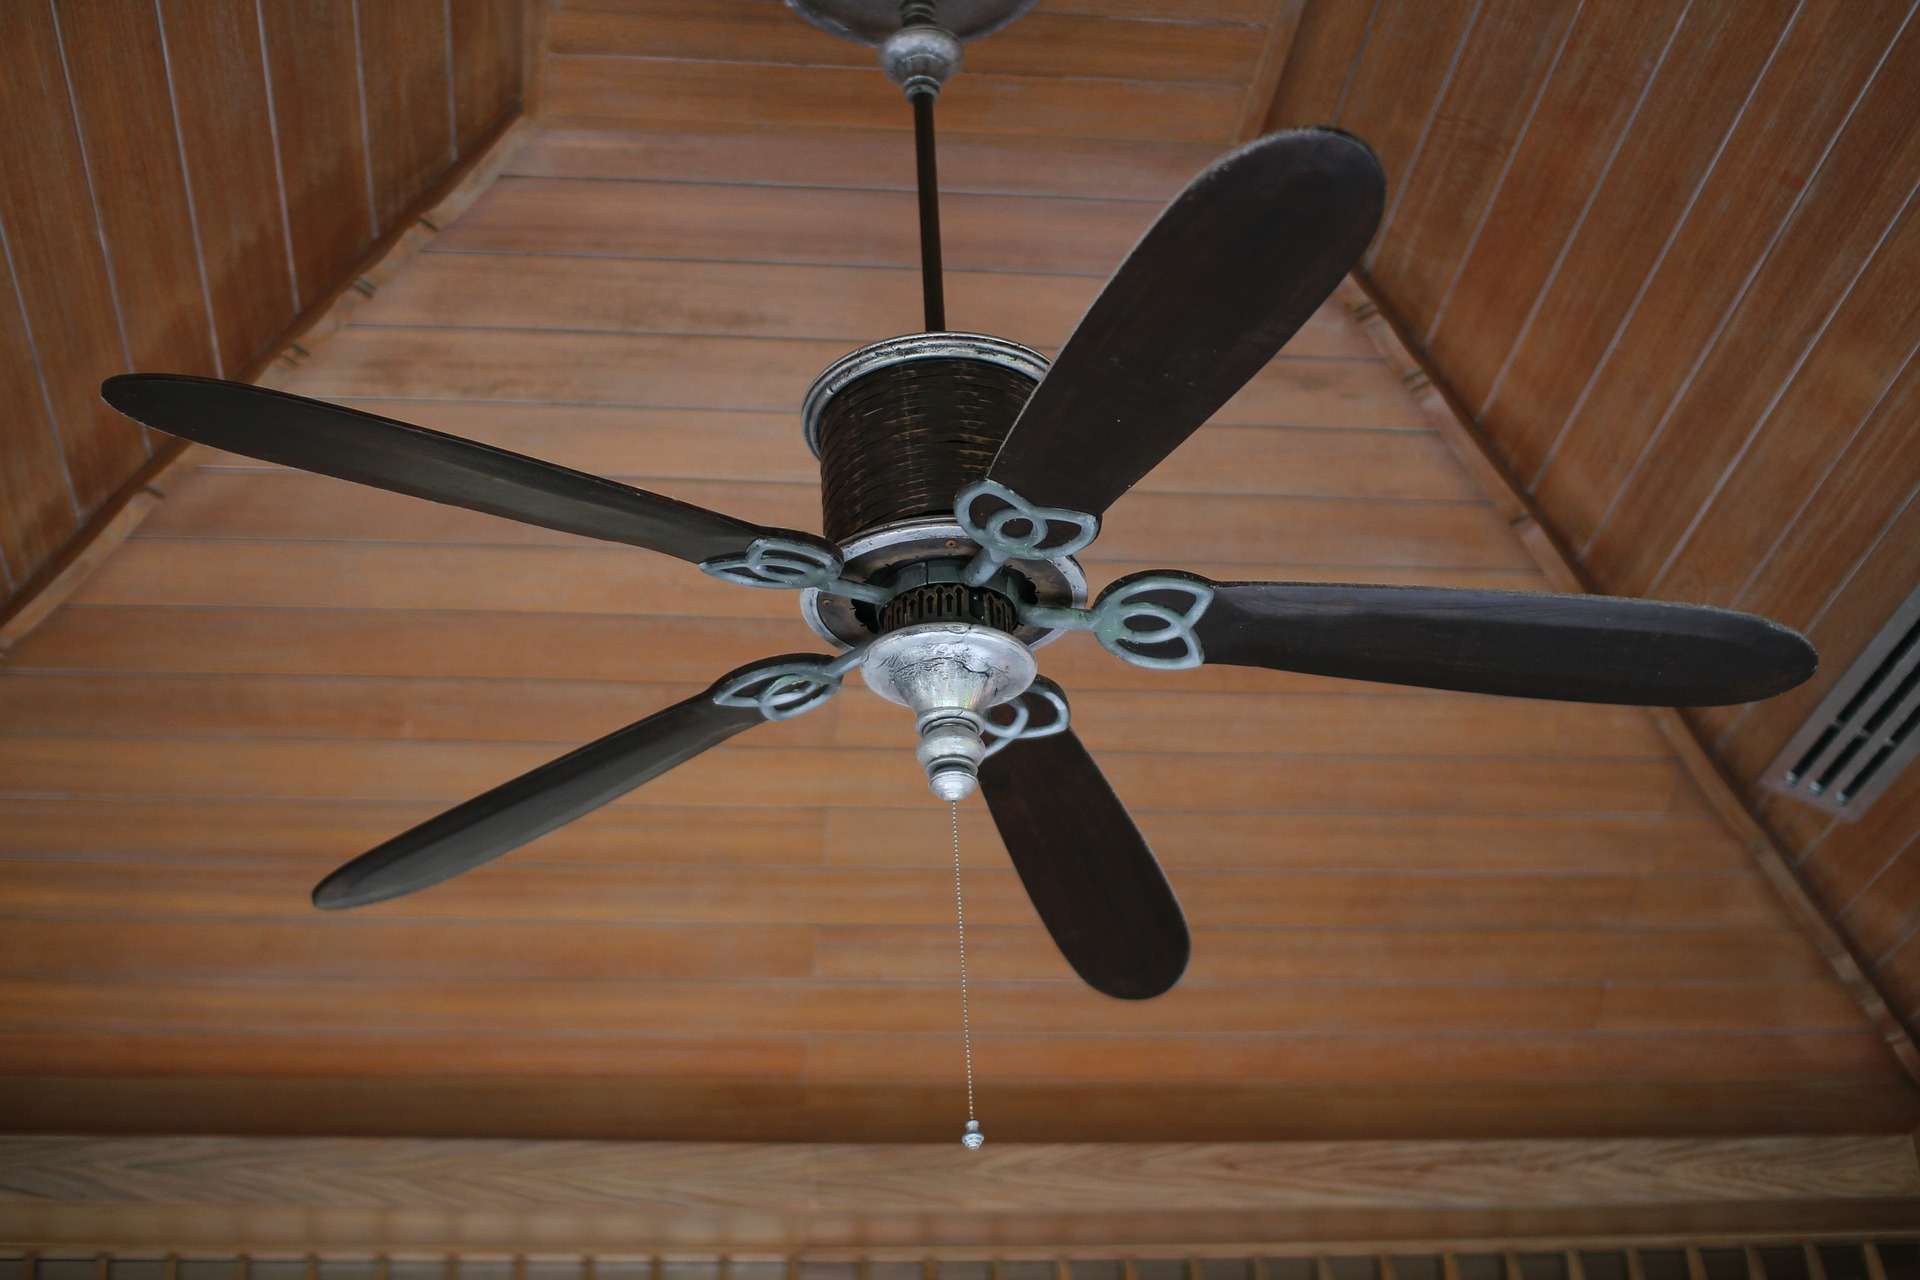 electric-fan-414575_1920.jpg